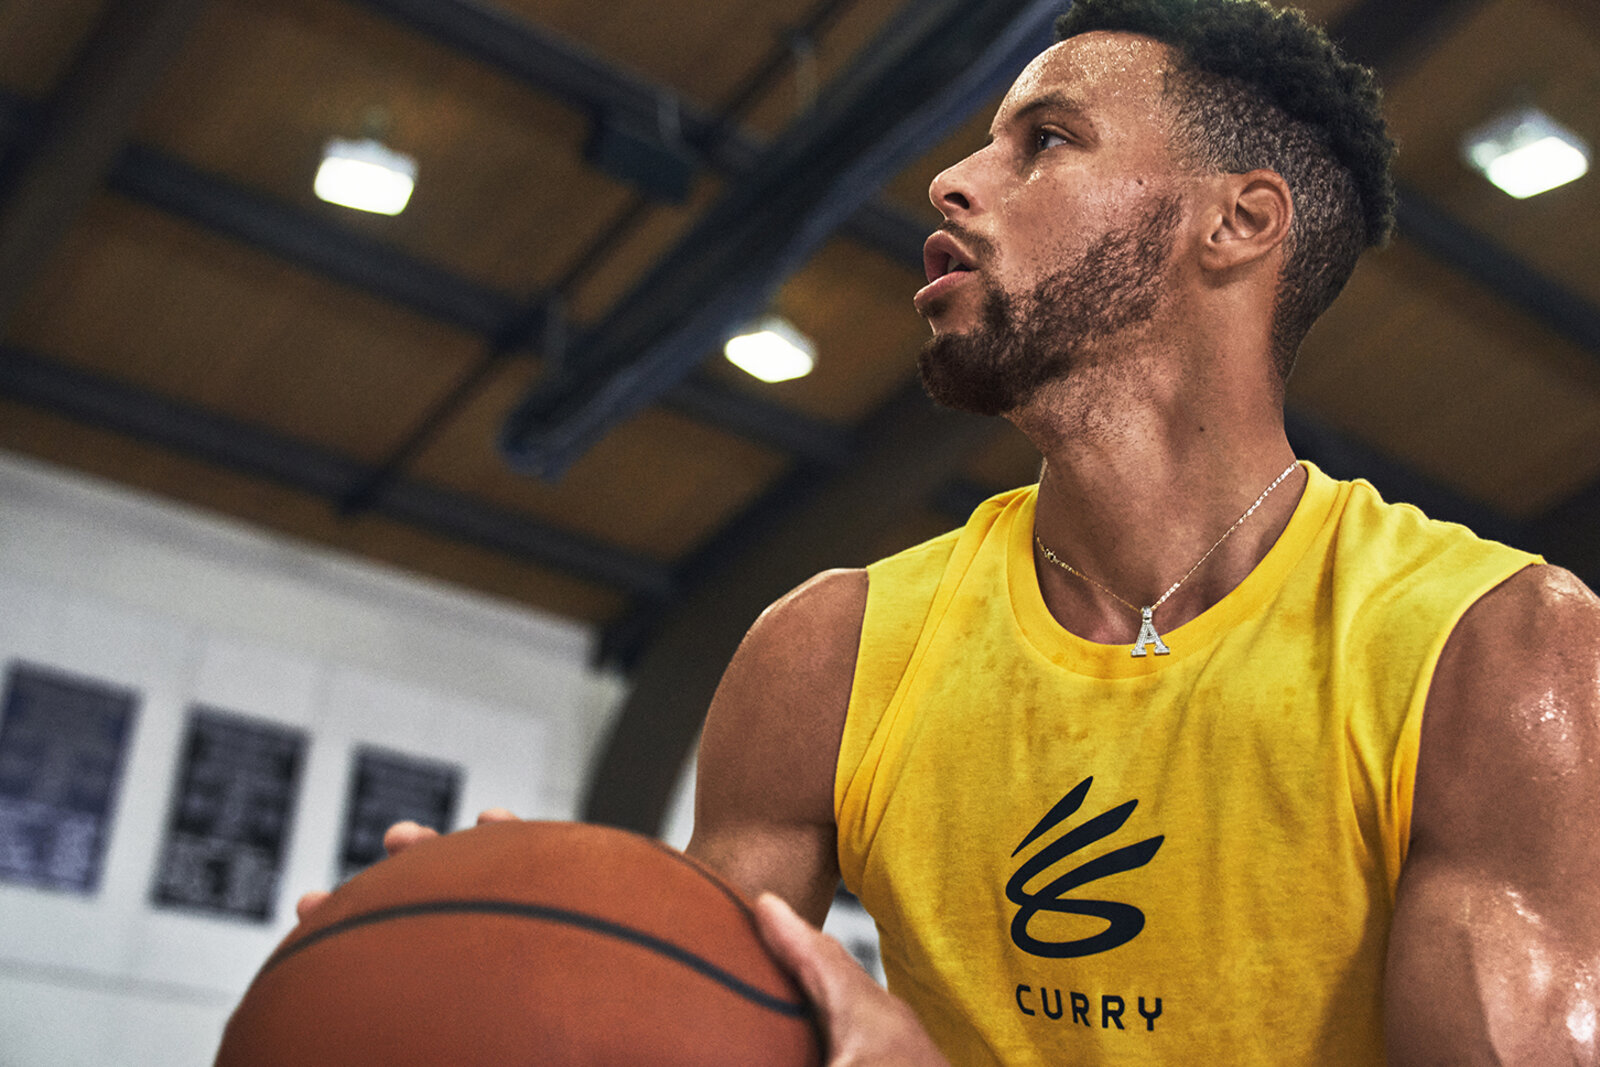 Stephen Curry sports the new Curry Brand logo. (Image: Trevor Smith for Under Armour)